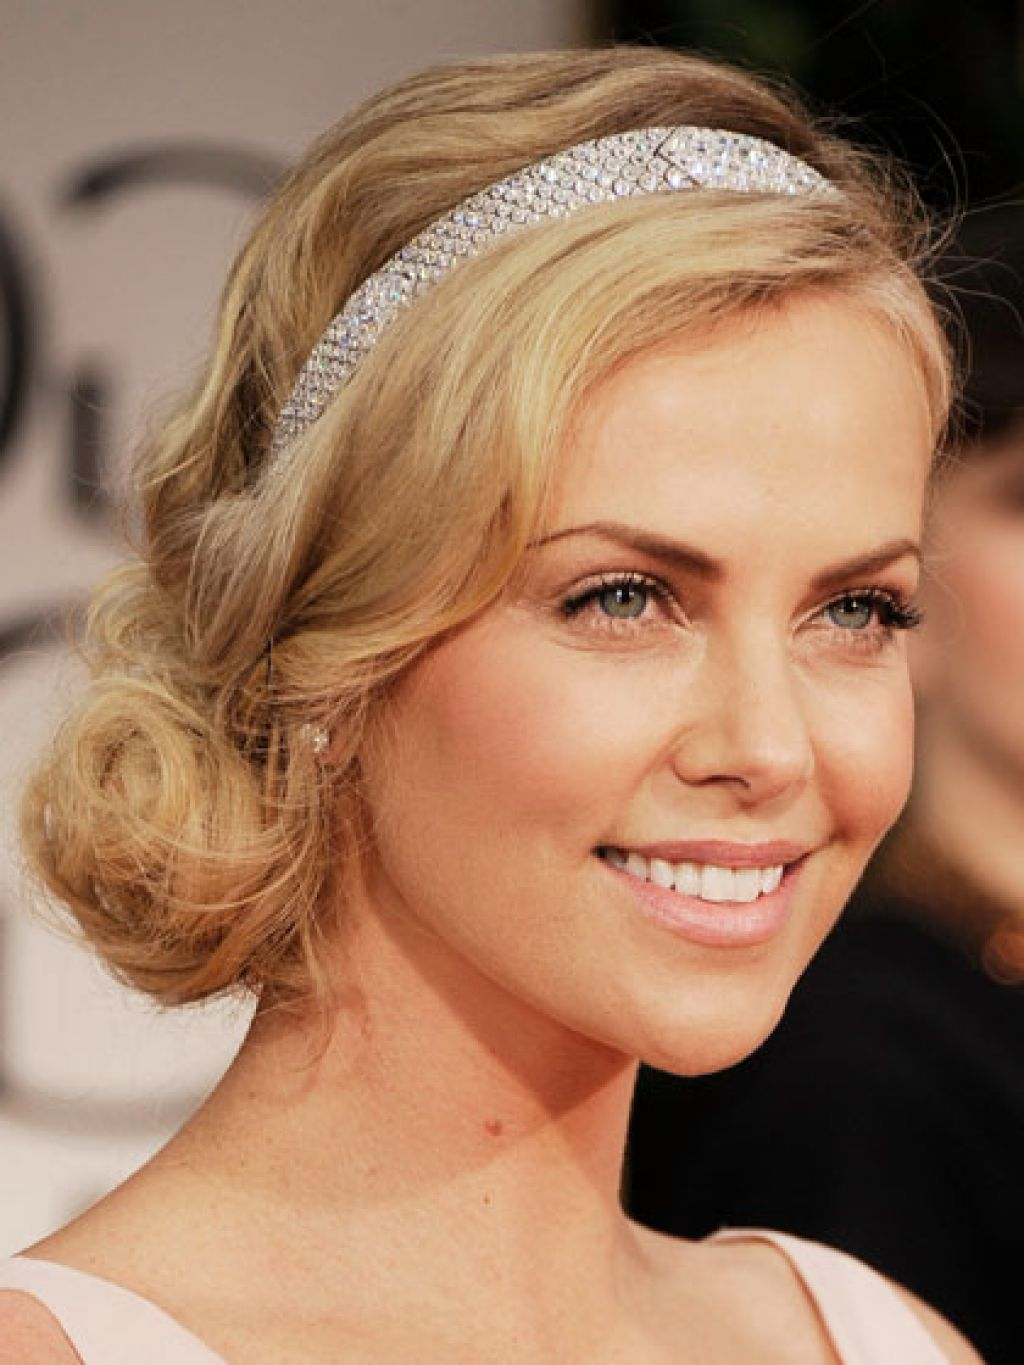 hairstyles-with-a-headband-for-long-hair-long-hairstyle-galleries-with-regard-to-headband-hairstyles-v-cut-and-u-cut-hairstyles